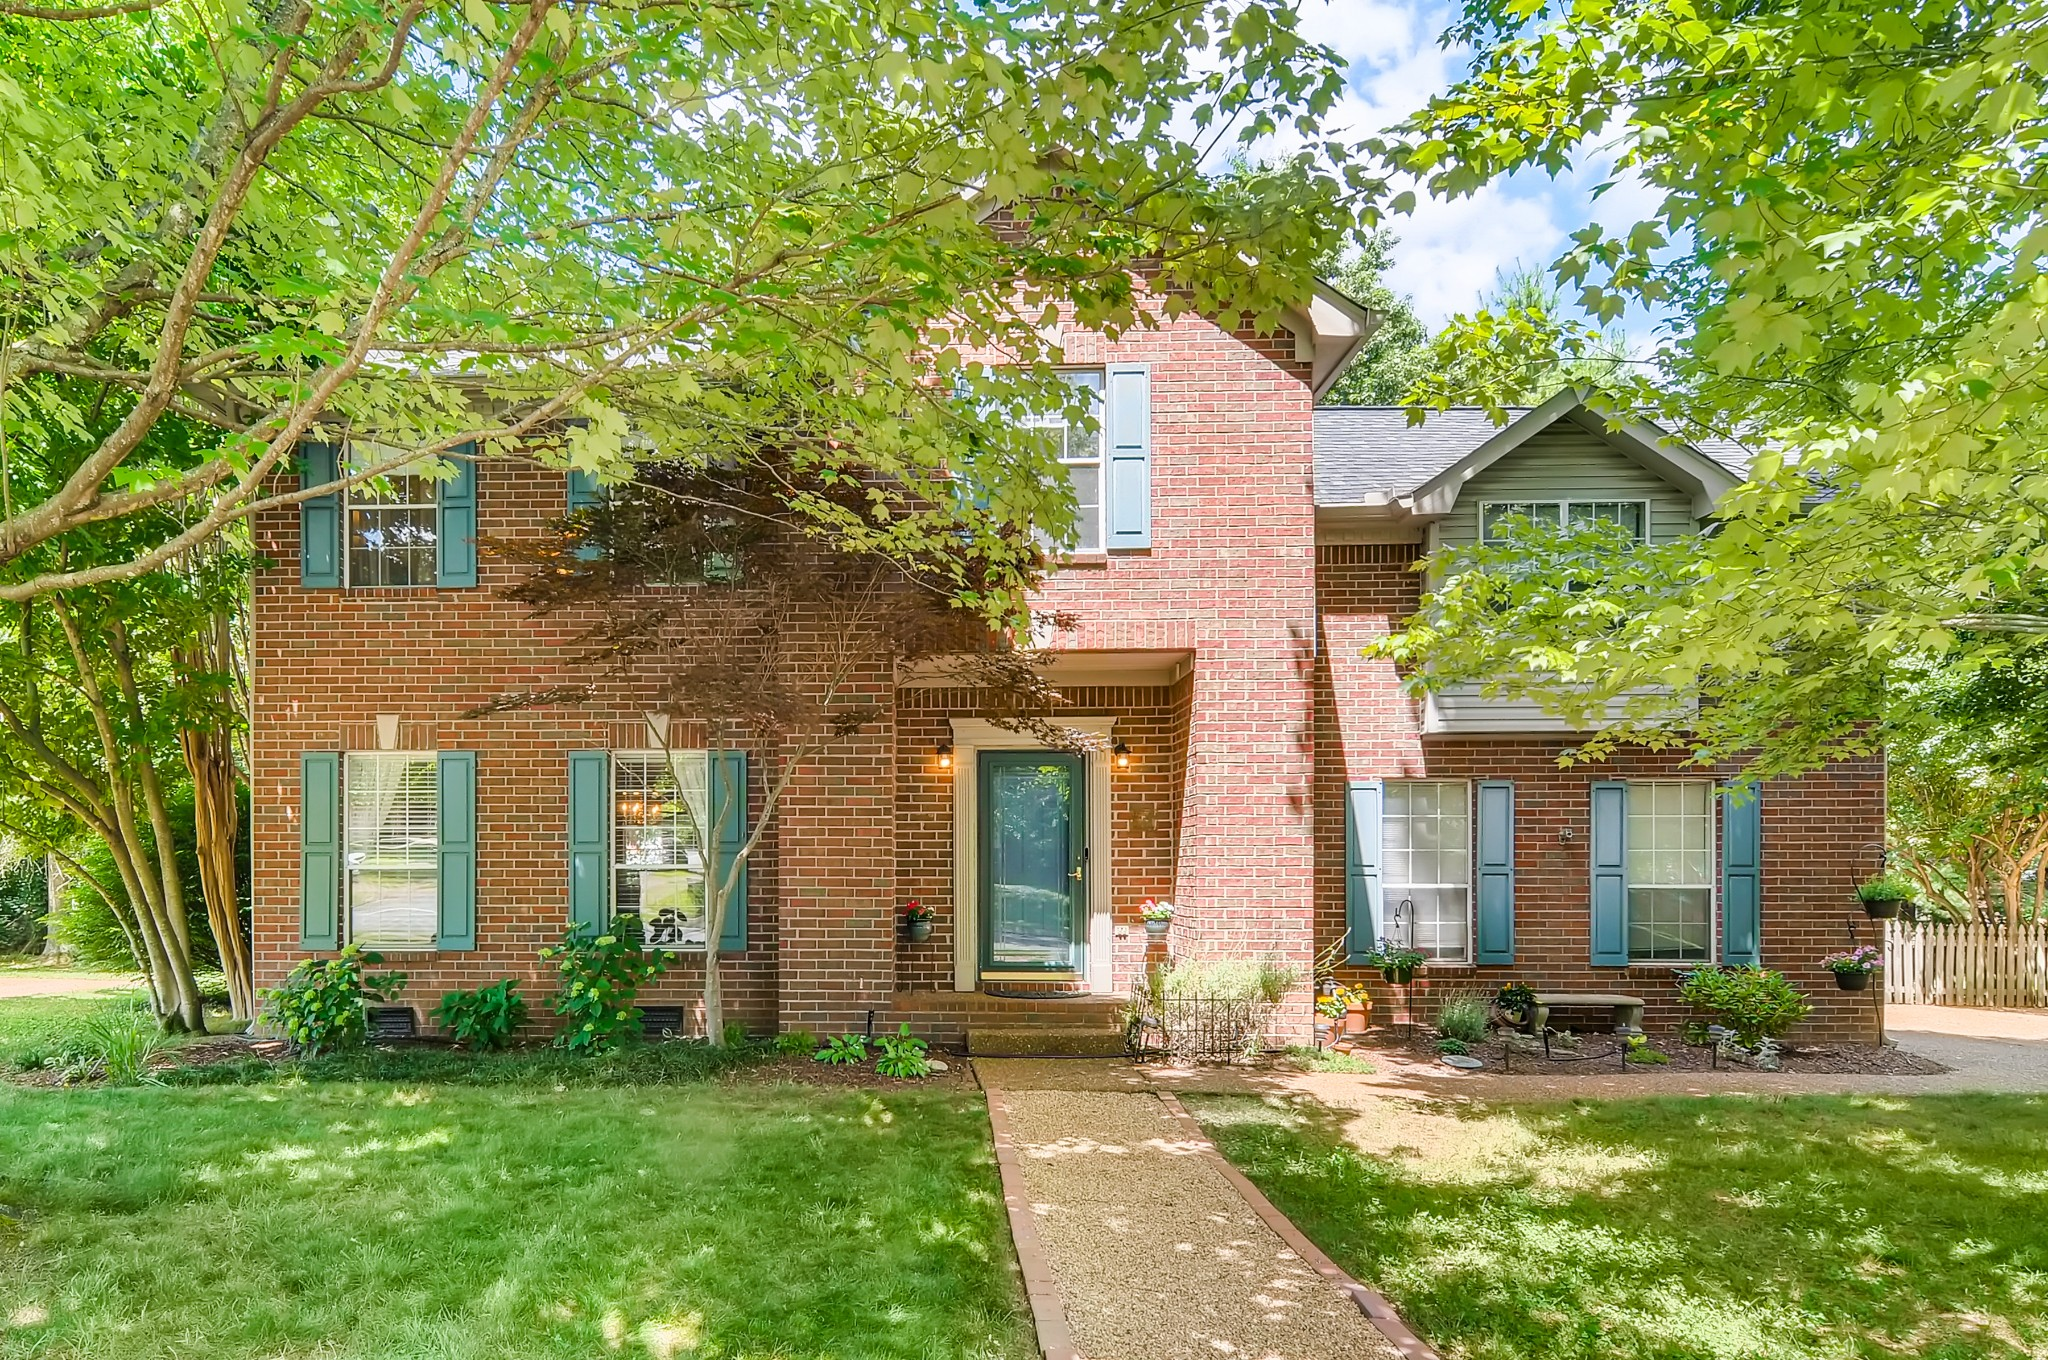 3 bed/2.5 bath in a small, friendly neighborhood - Hardwoods throughout - 19x19 2 level wood deck with jacuzzi and fenced in backyard - New roof 2018 - Close proximity to downtown Franklin & Cool Springs. First showings at noon on Friday, July 17